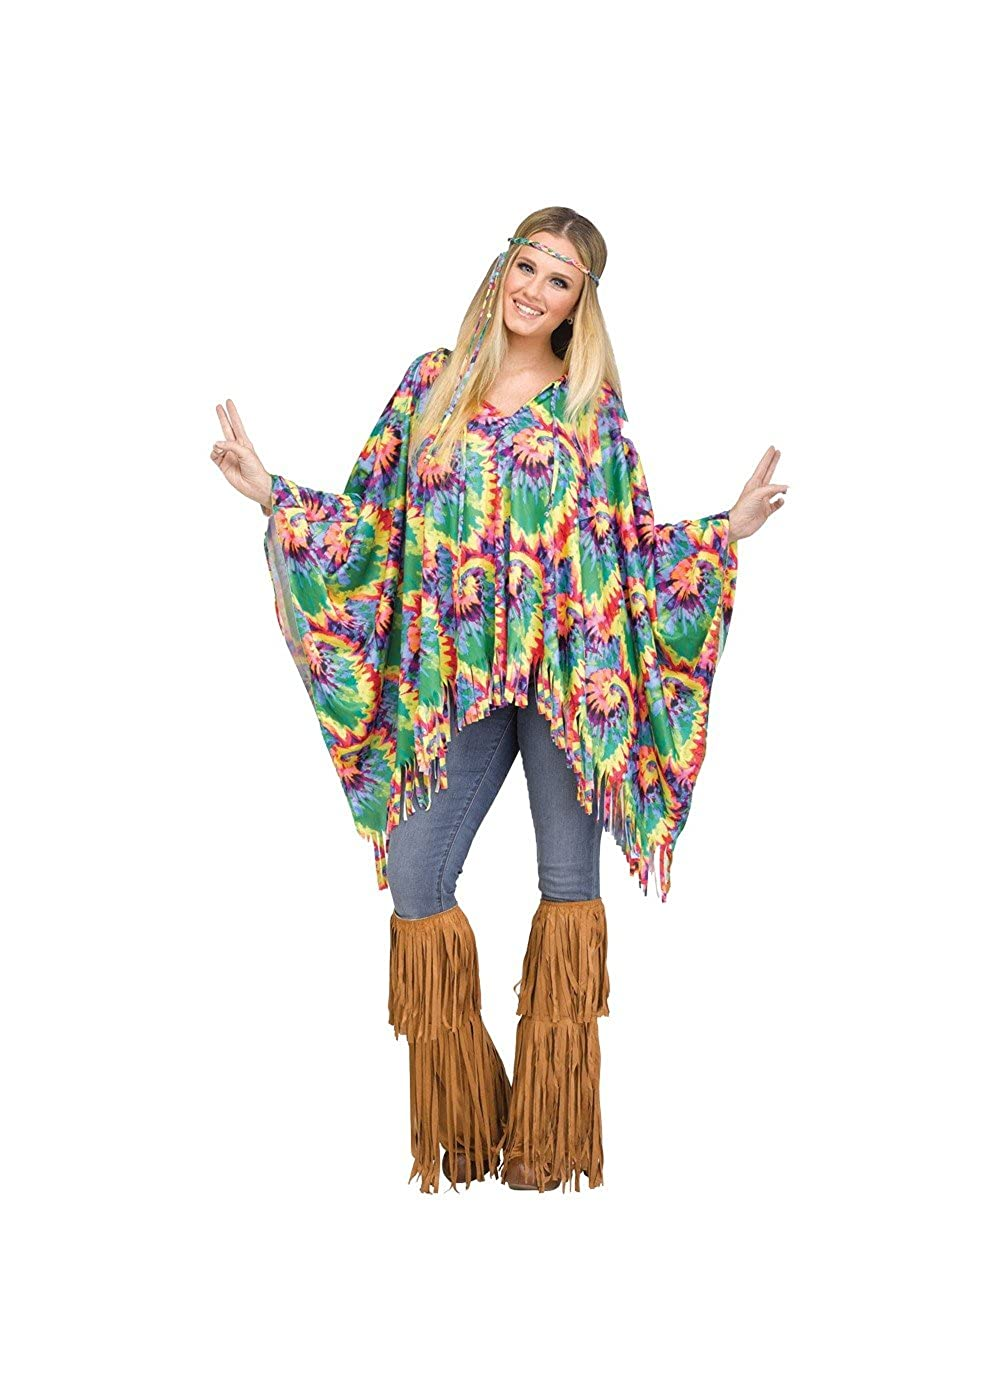 70s Outfits – 70s Style Ideas for Women Tie Dye Hippie Poncho $21.71 AT vintagedancer.com